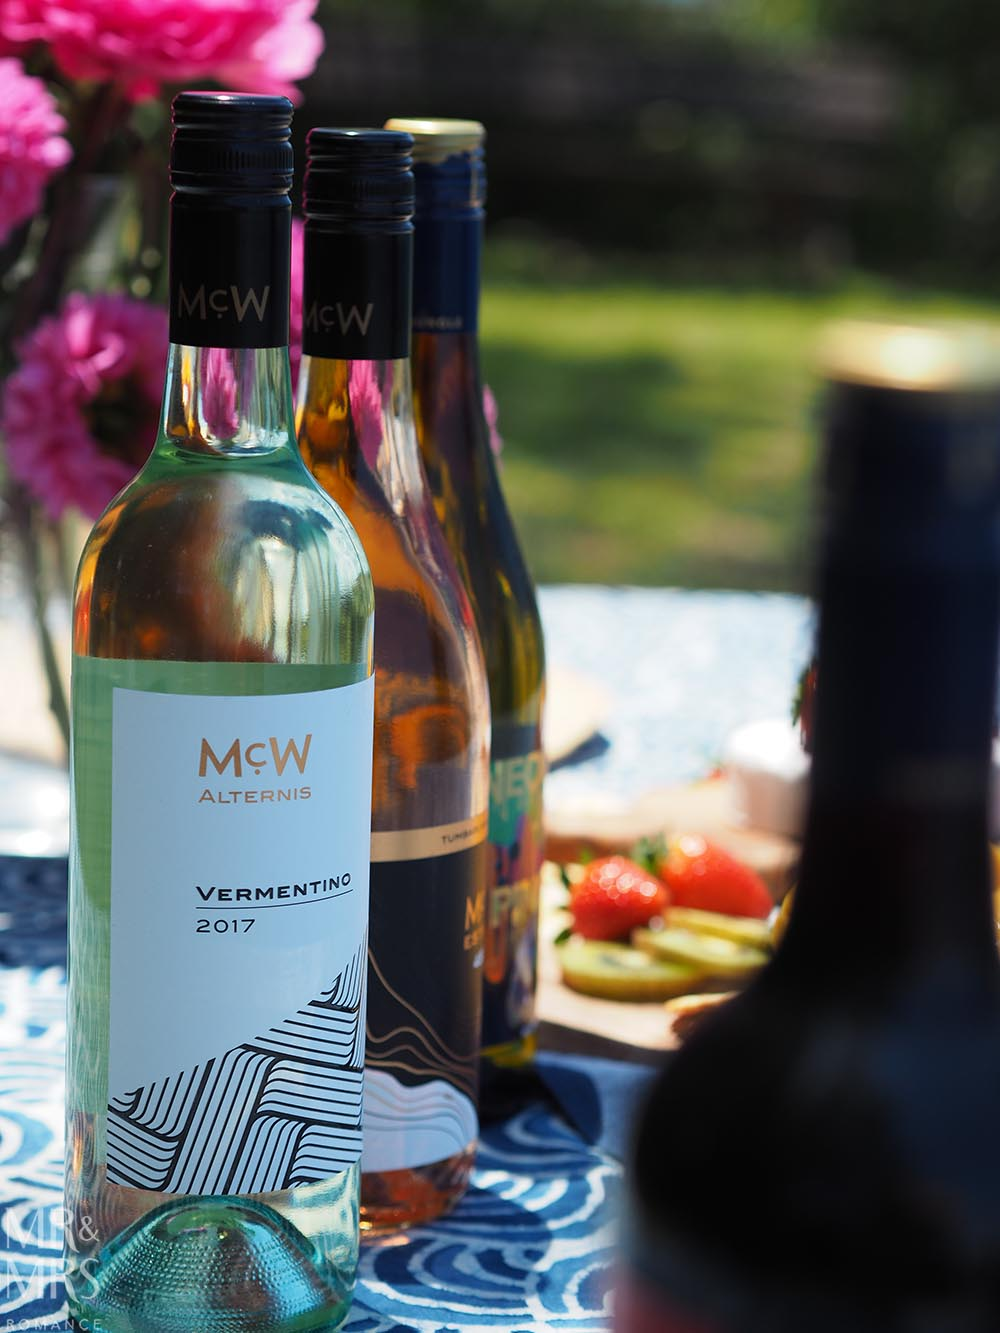 Summer party wines - McW Alternis Vermentino